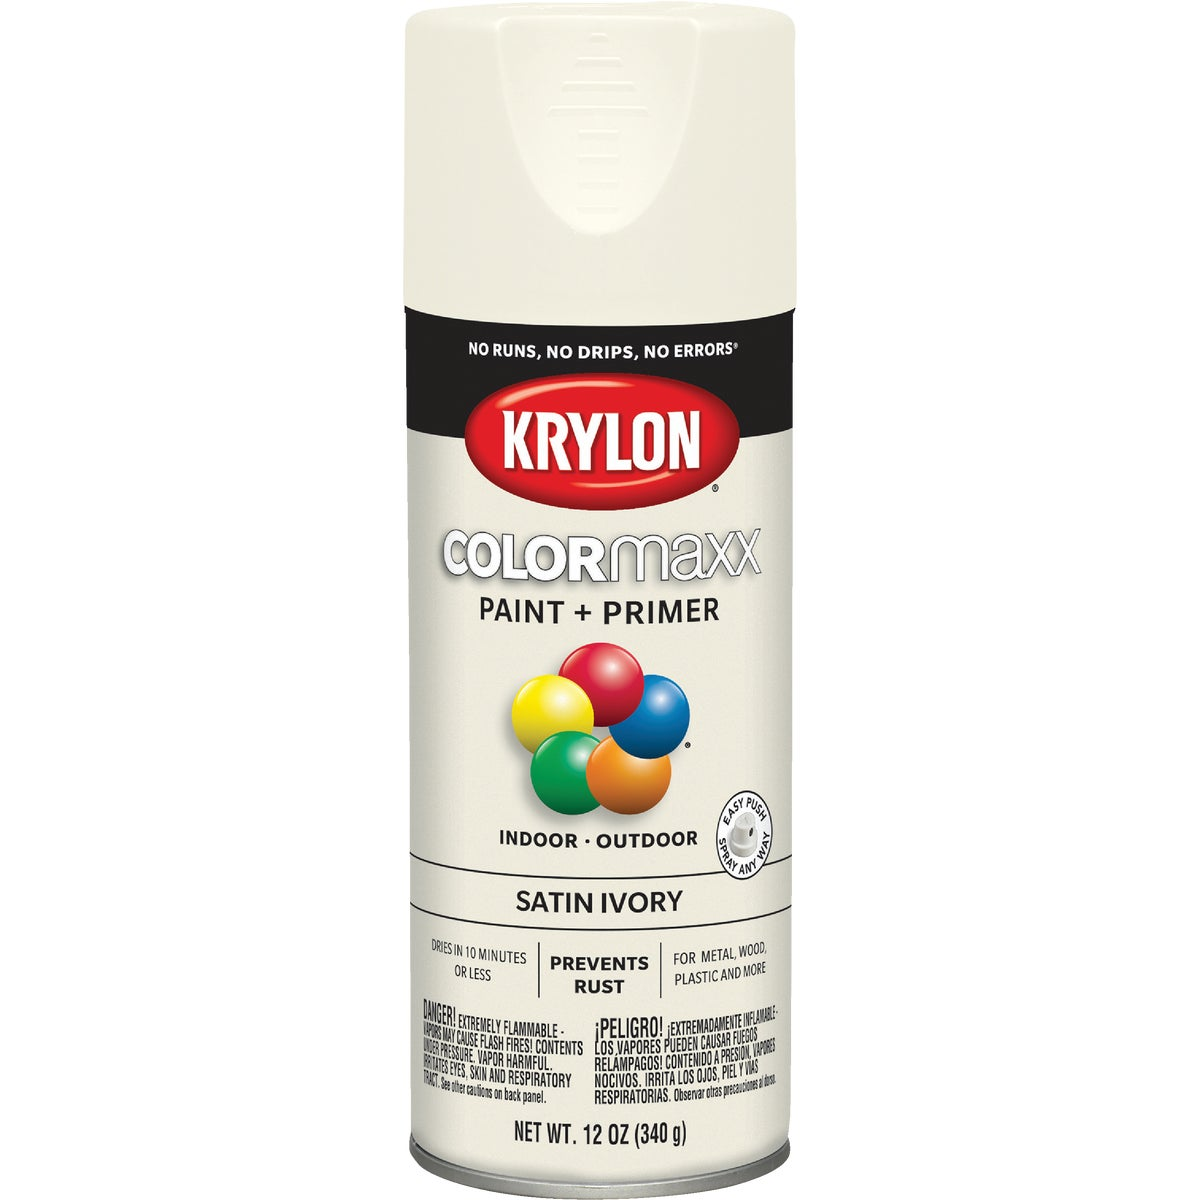 SATIN IVORY SPRAY PAINT - 53510 by Krylon/consumer Div